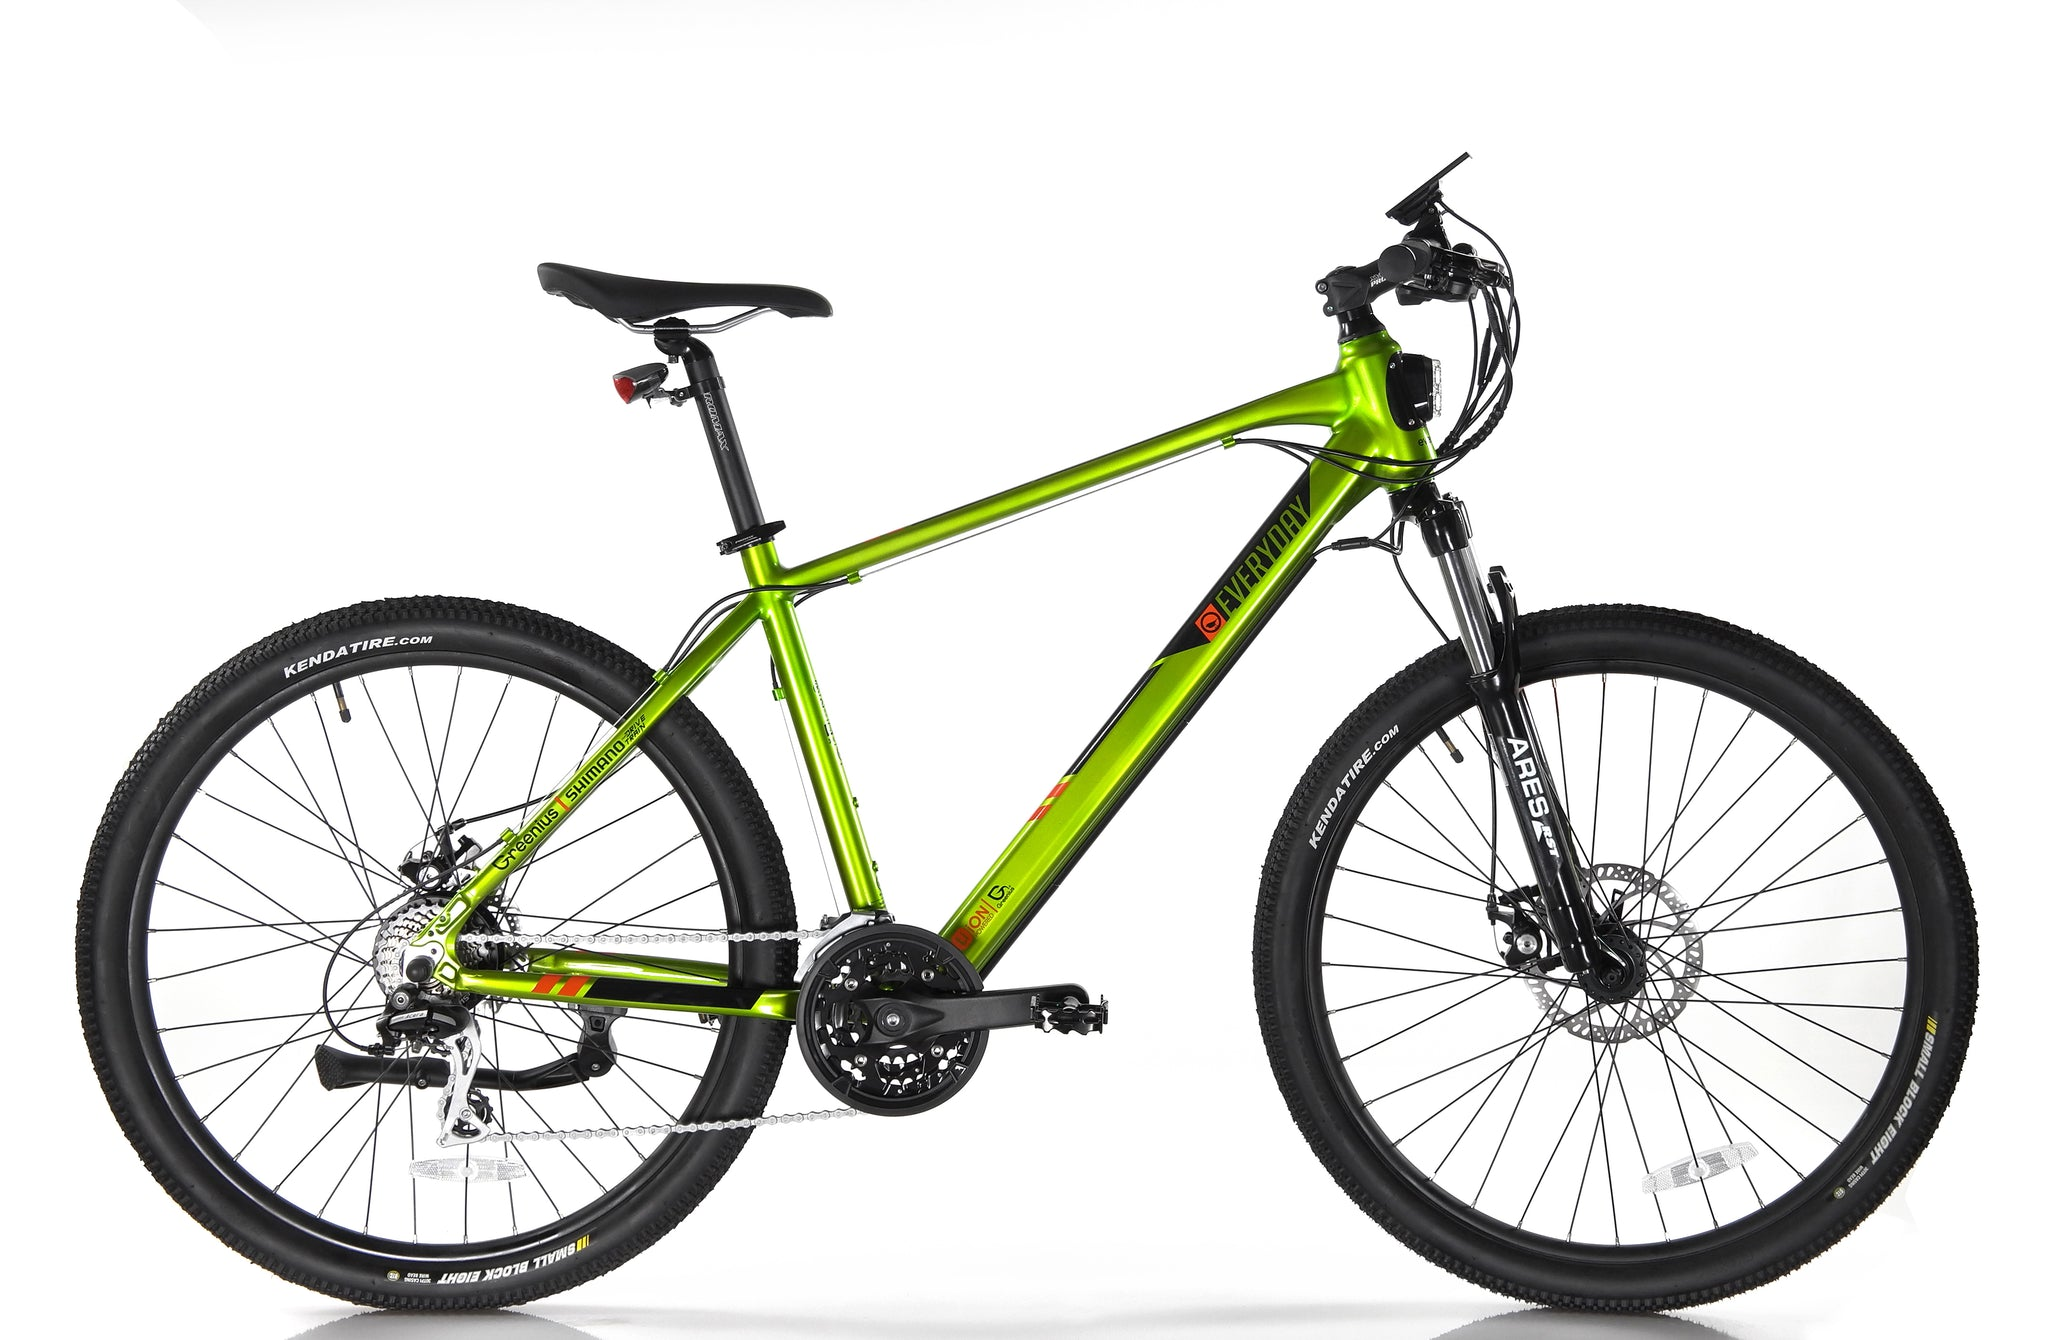 Everyday Exploit E-Bike (Now Available at Costco)